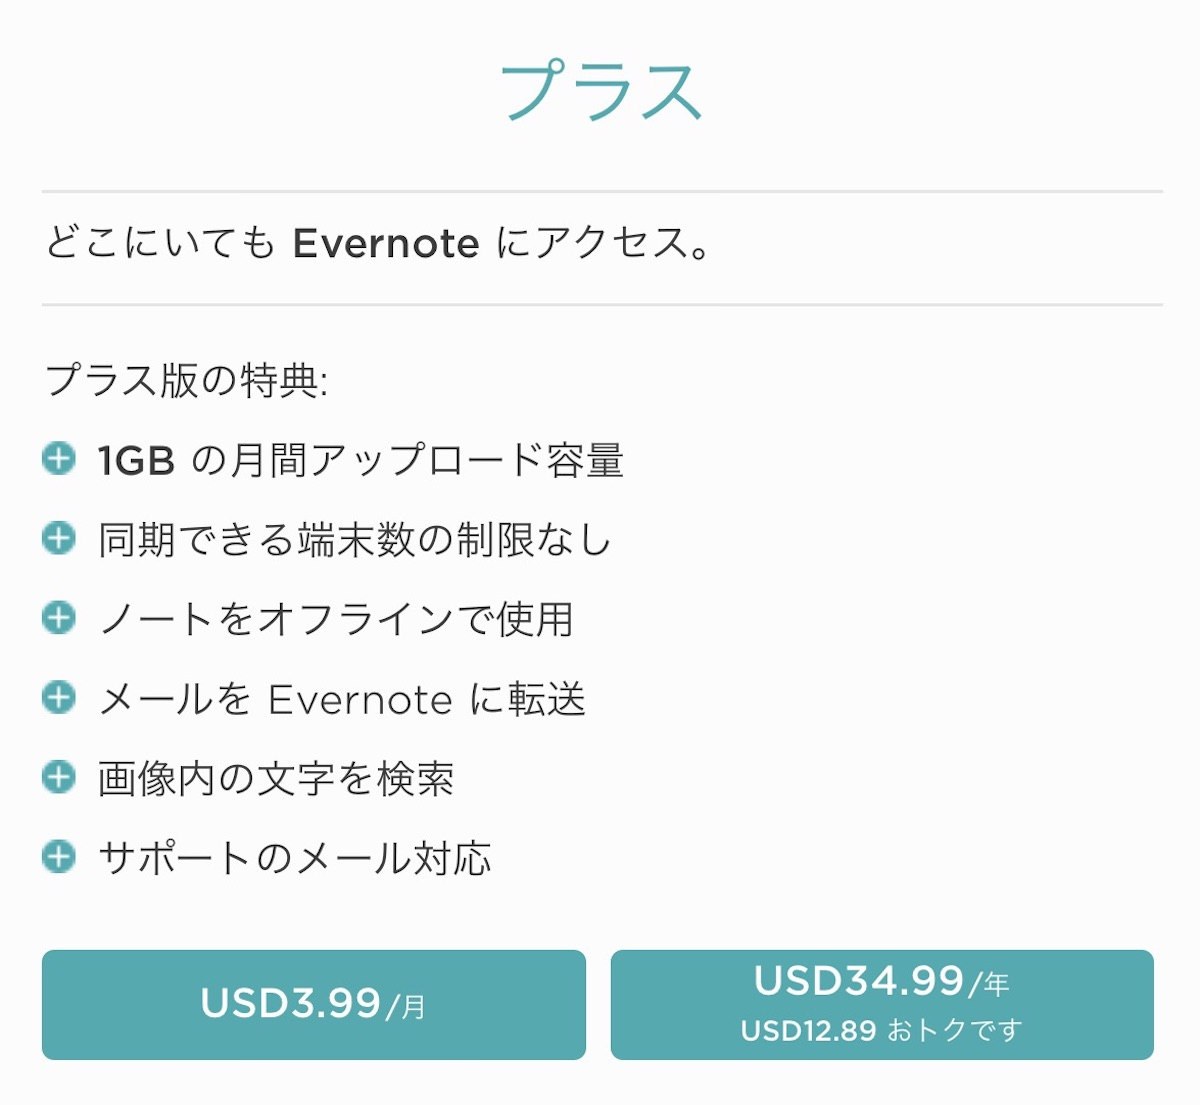 evernote-downgrade_6